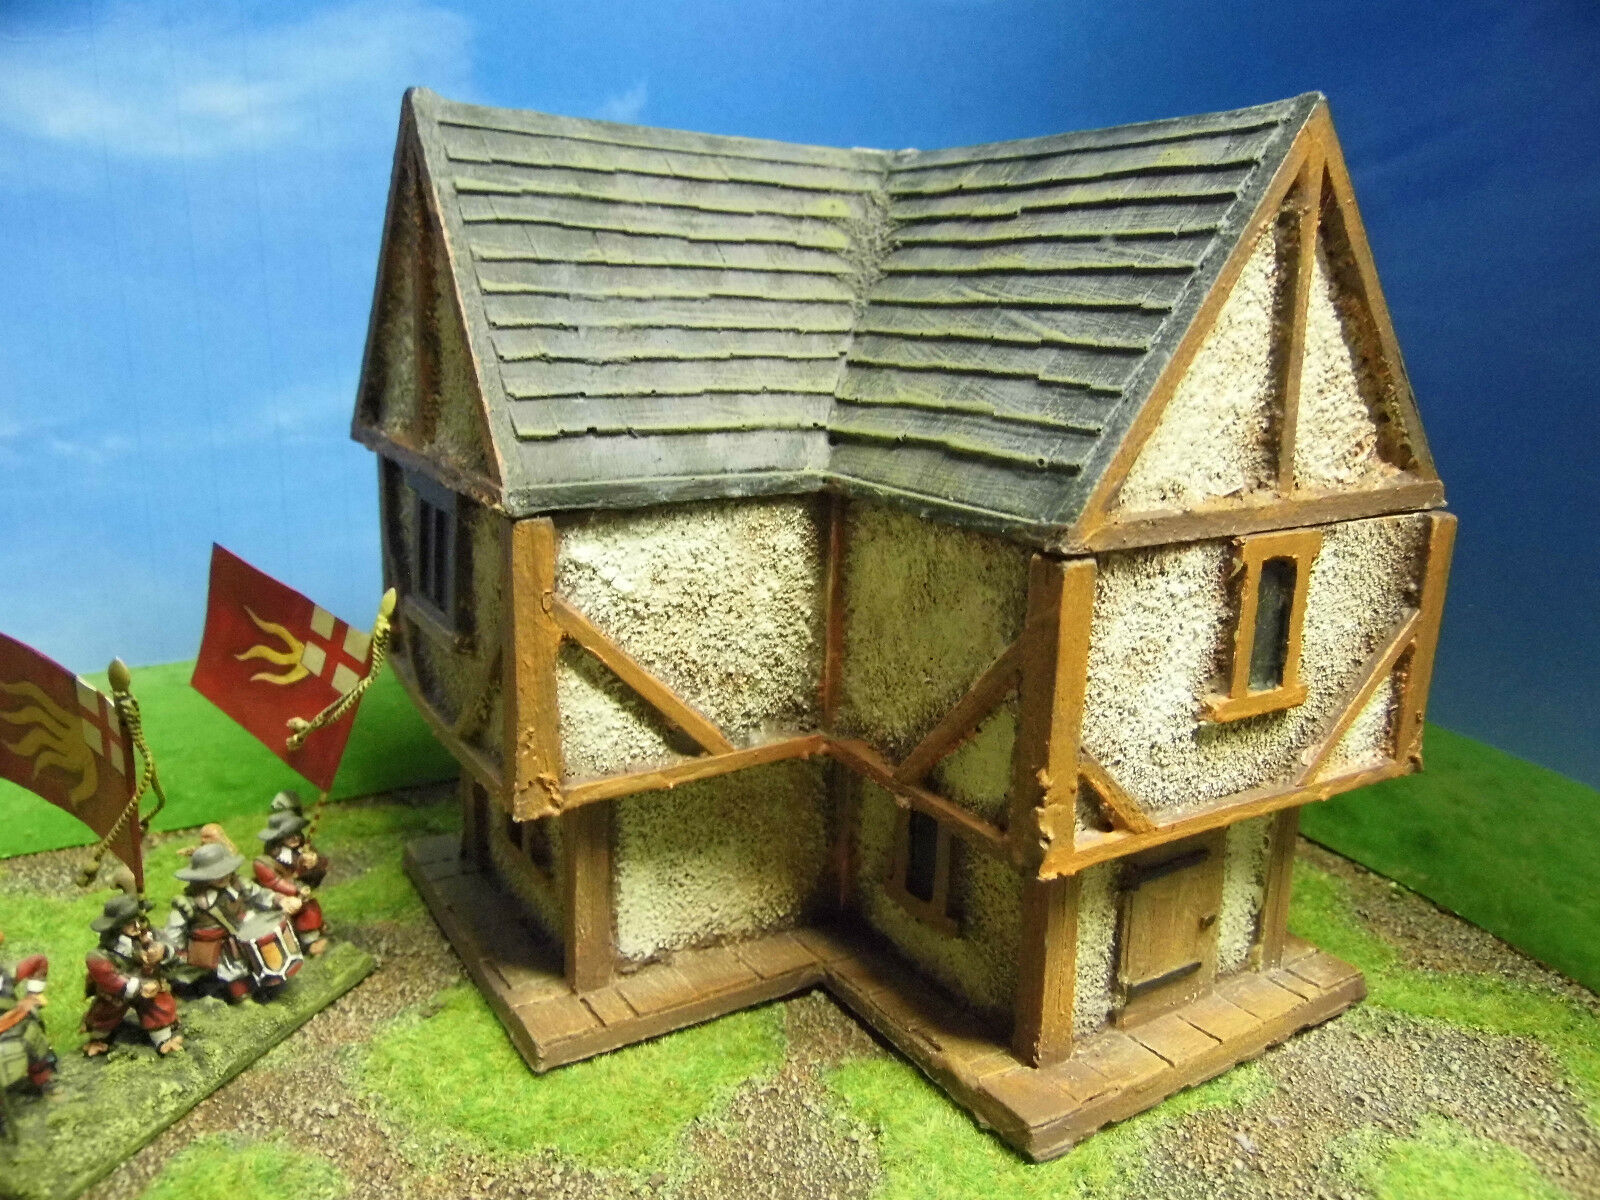 28MM PMC GAMES ME13 (PAINTED) TWO STOREY CORNER HOUSE SLATE ROOF - MEDIEVAL ECW